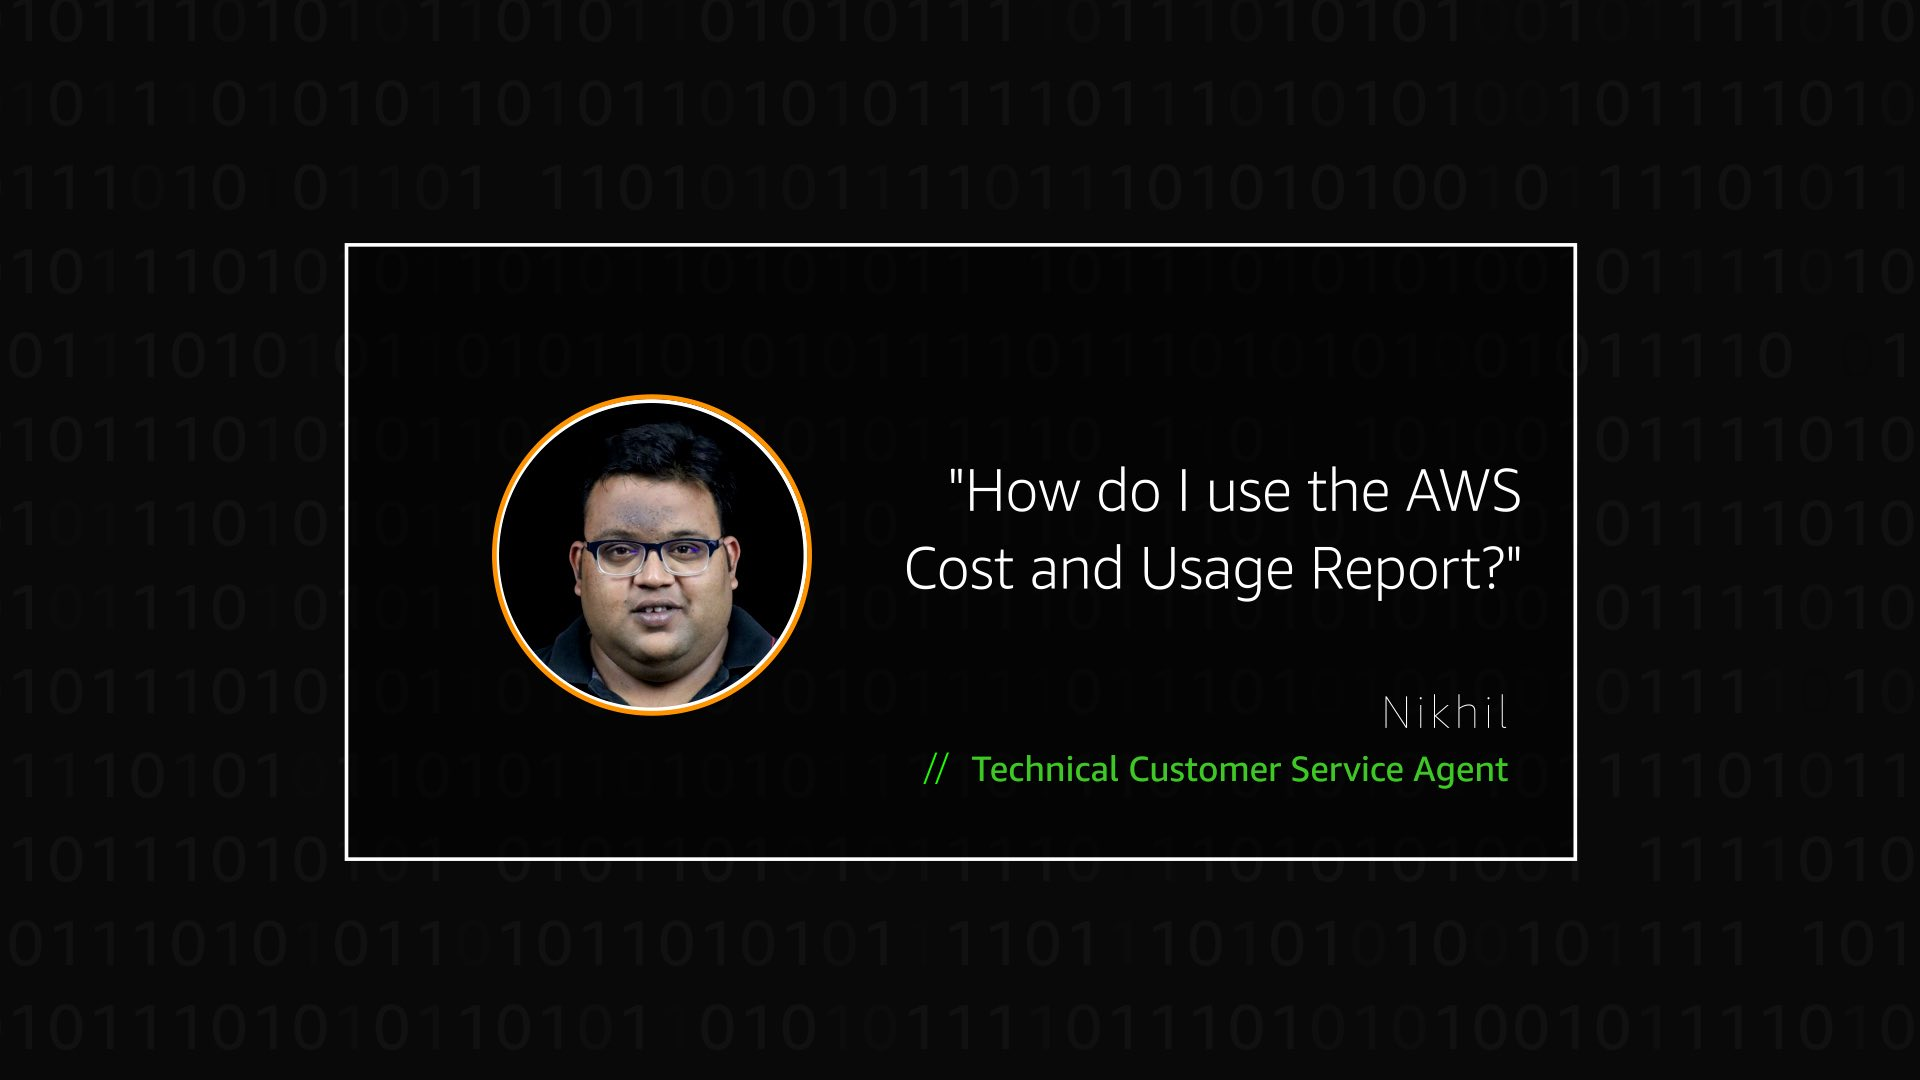 Watch Nikhil's video to learn more